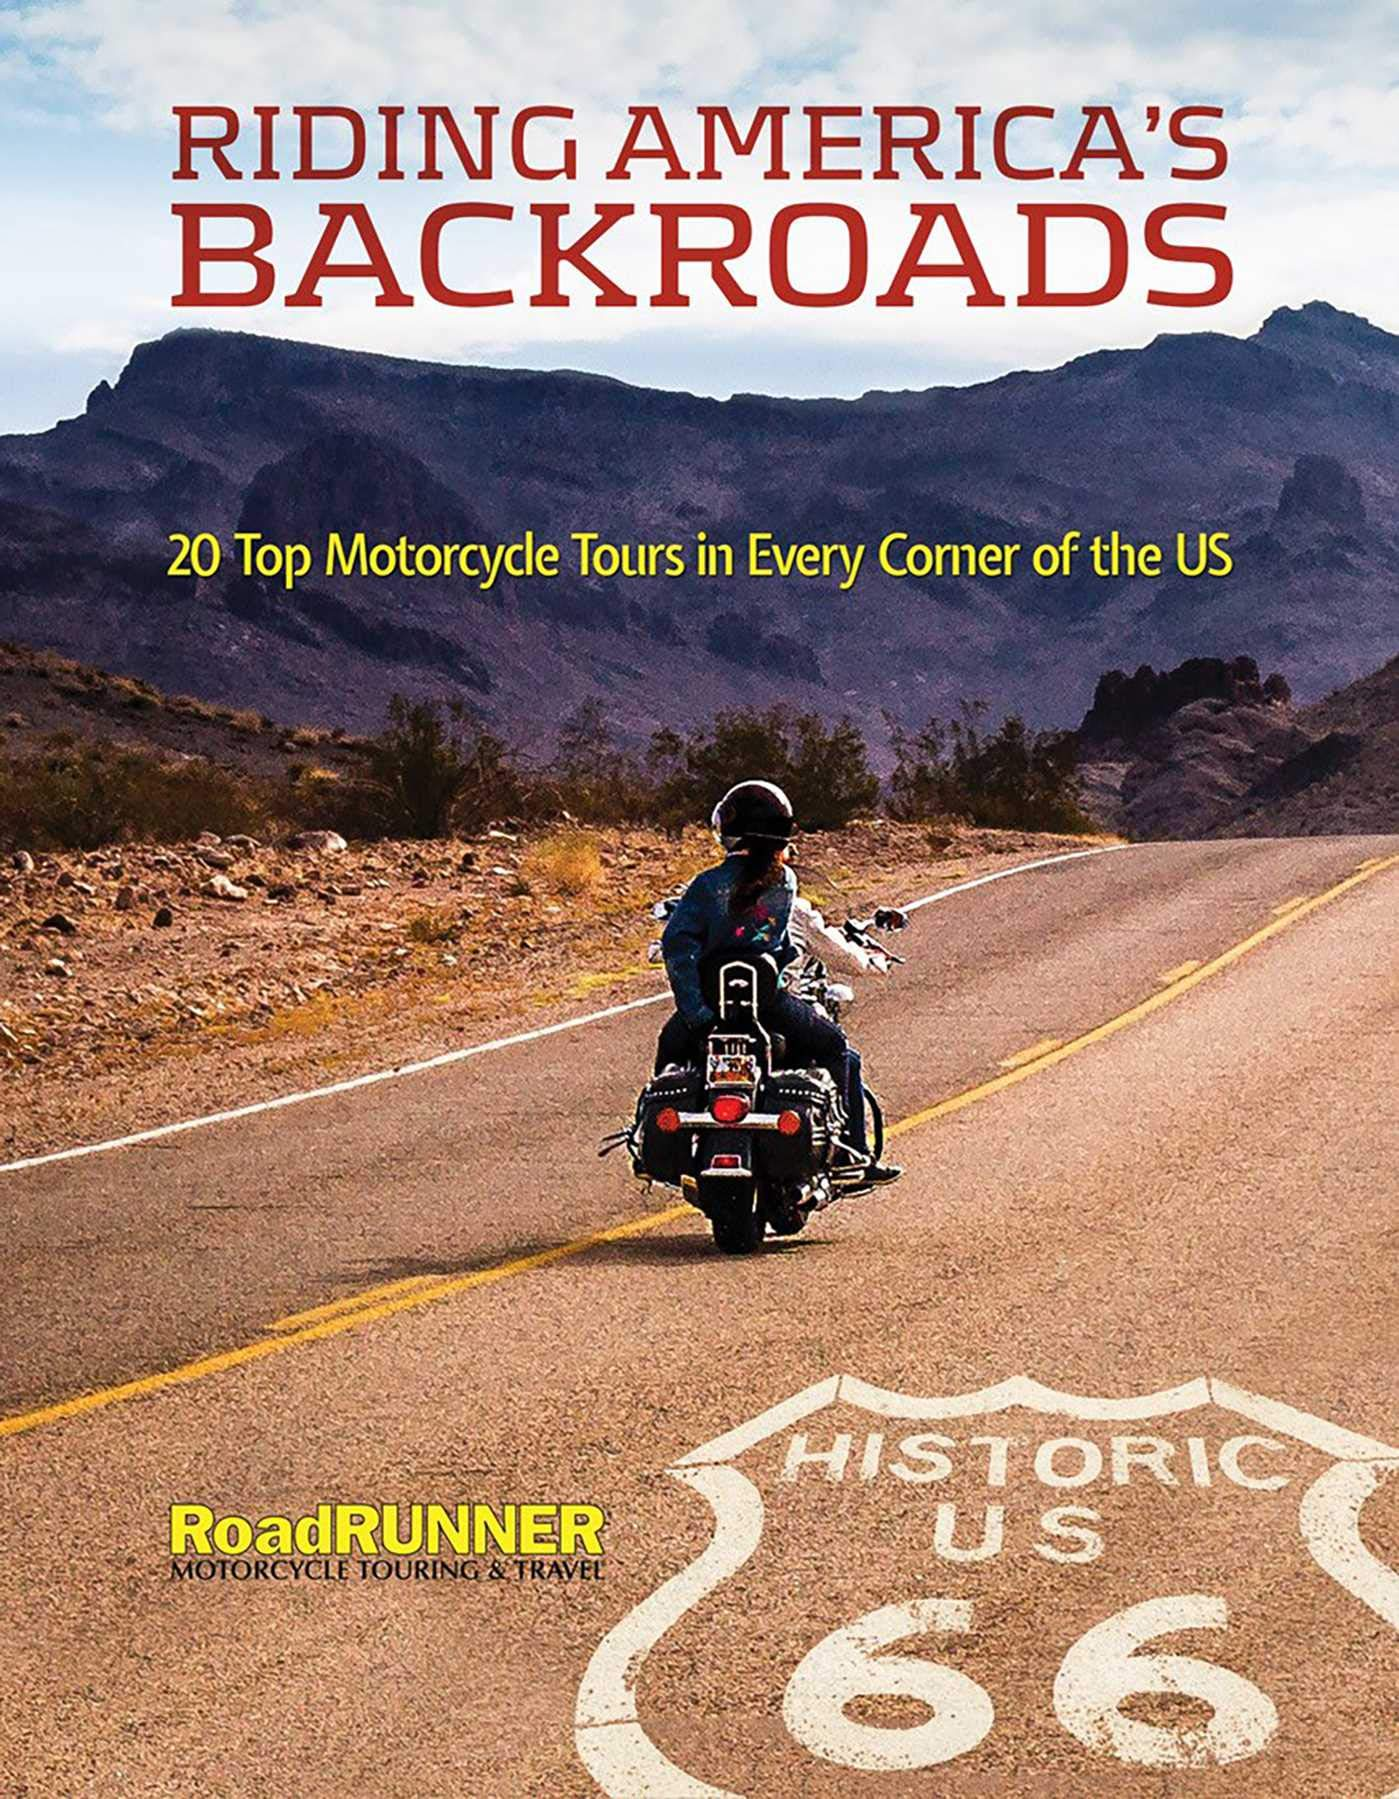 Riding America's Backroads: 20 Top Motorcycle Tours in Every Corner of the US by CompanionHouse Books